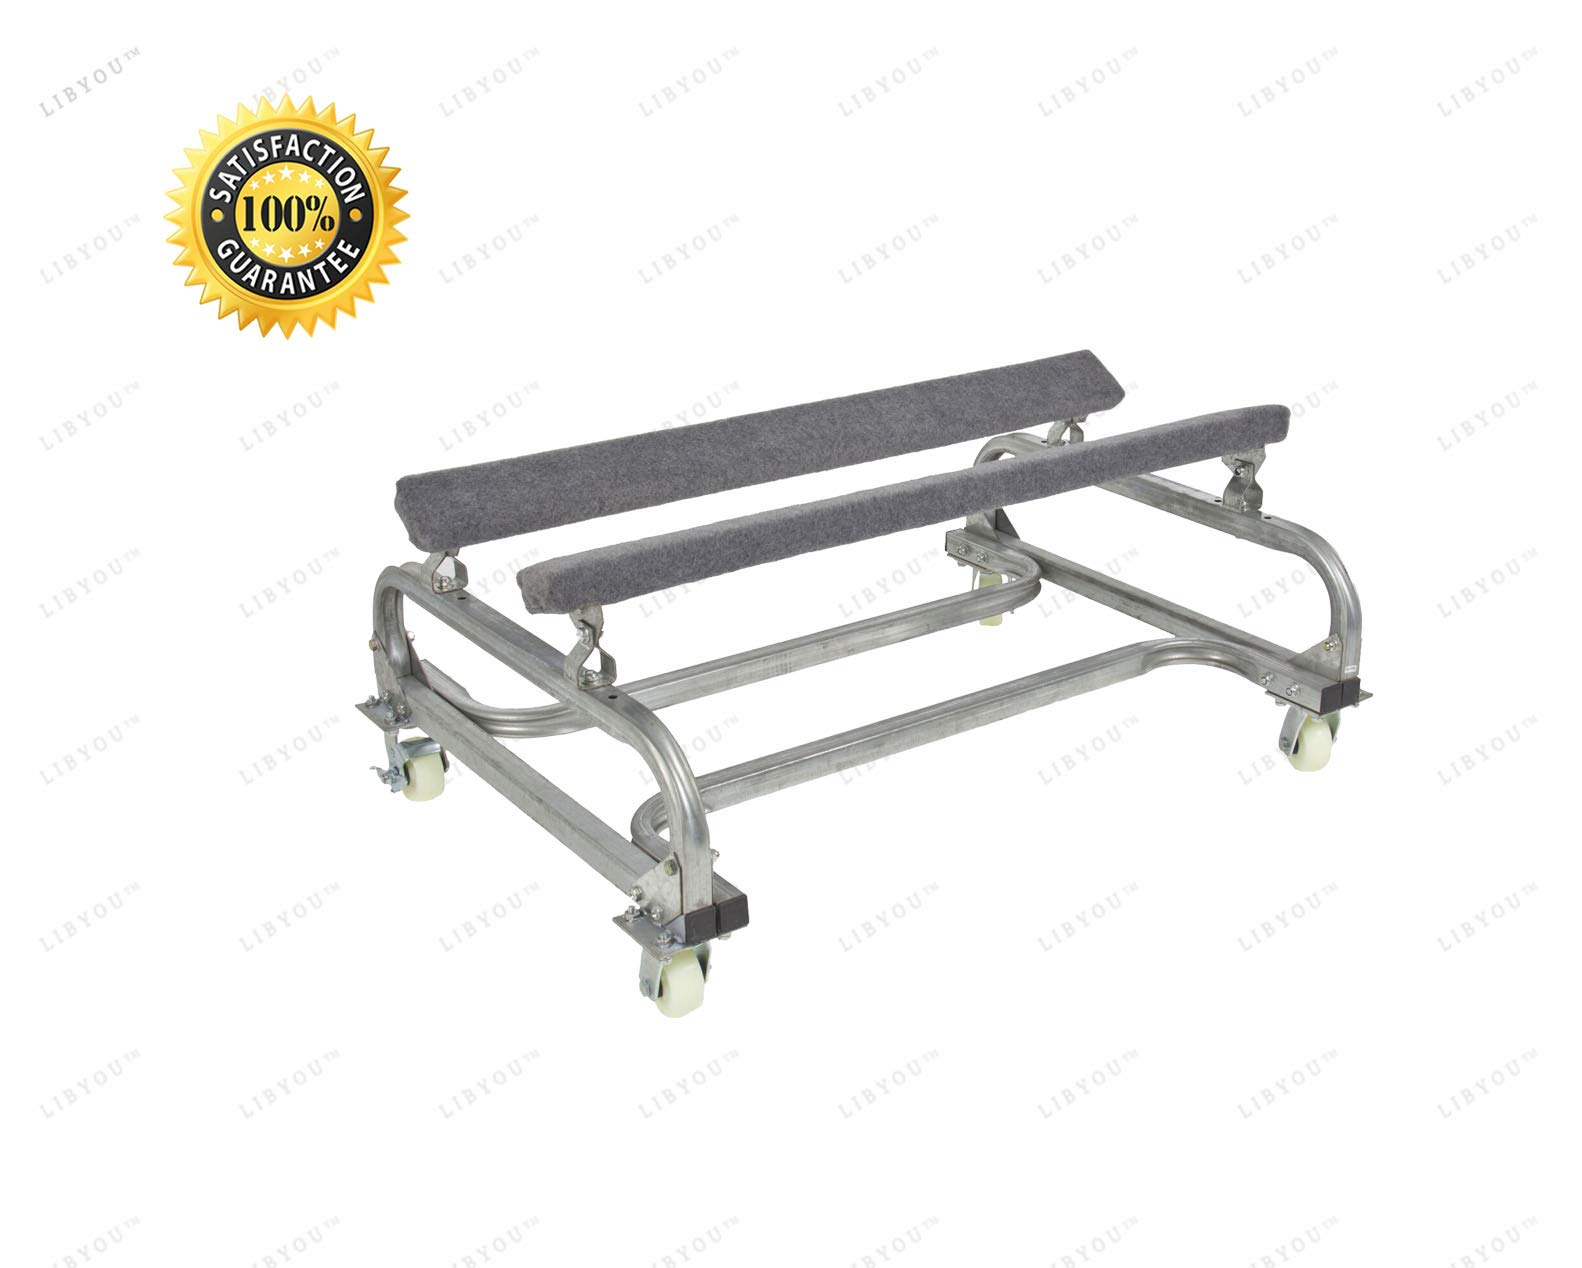 LIBYOU__Motor Bracket,watercraft Accessory,Boat Dolly Stand, Dolly Boat Jet Ski Stand,Storage Trailer Watercraft Cart,Watercraft Dolly,Dock Slipway Cart